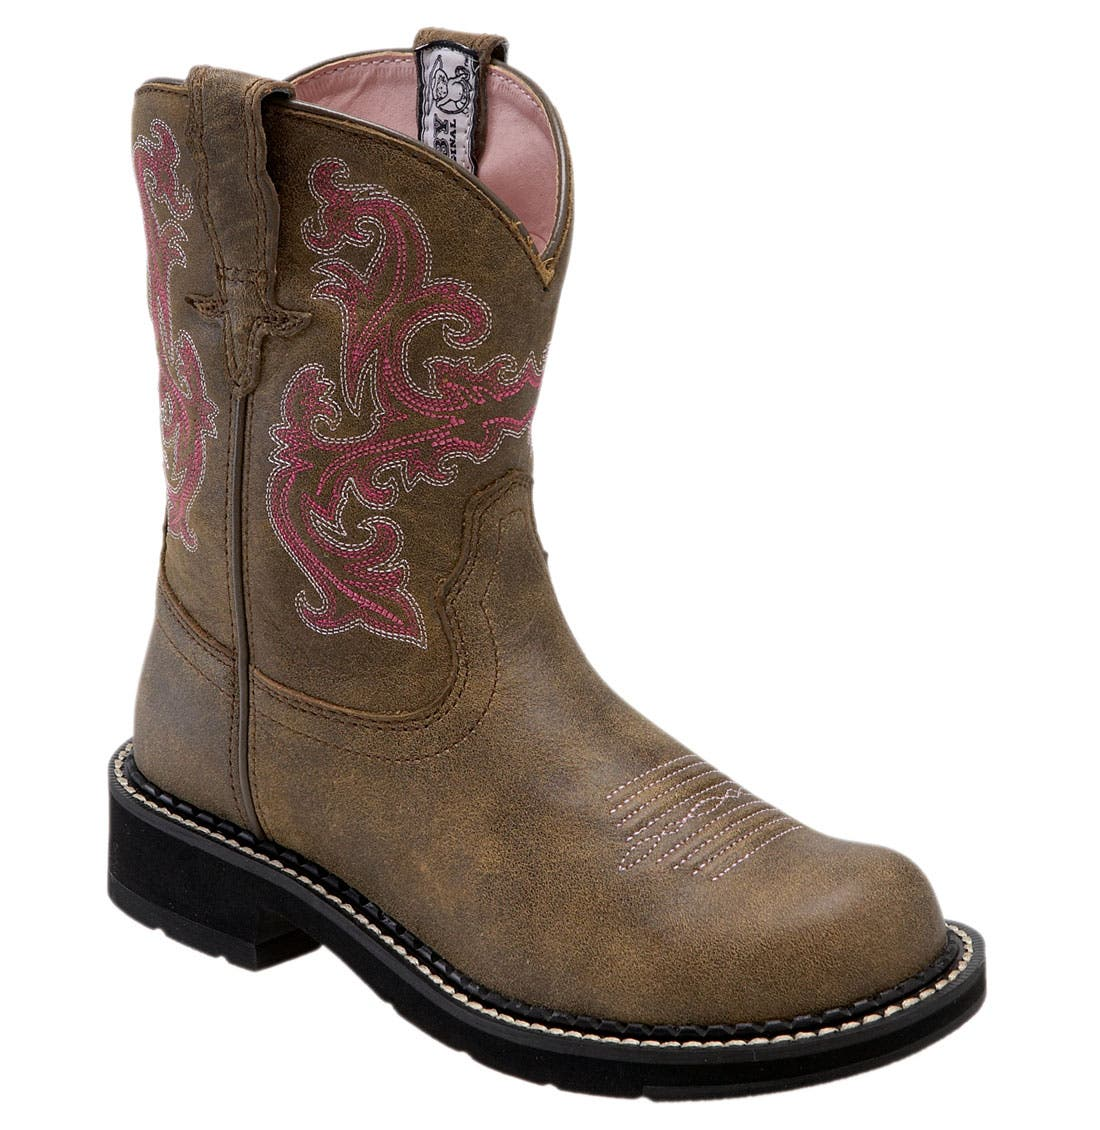 Alternate Image 1 Selected - Ariat 'Fatbaby II' Boot